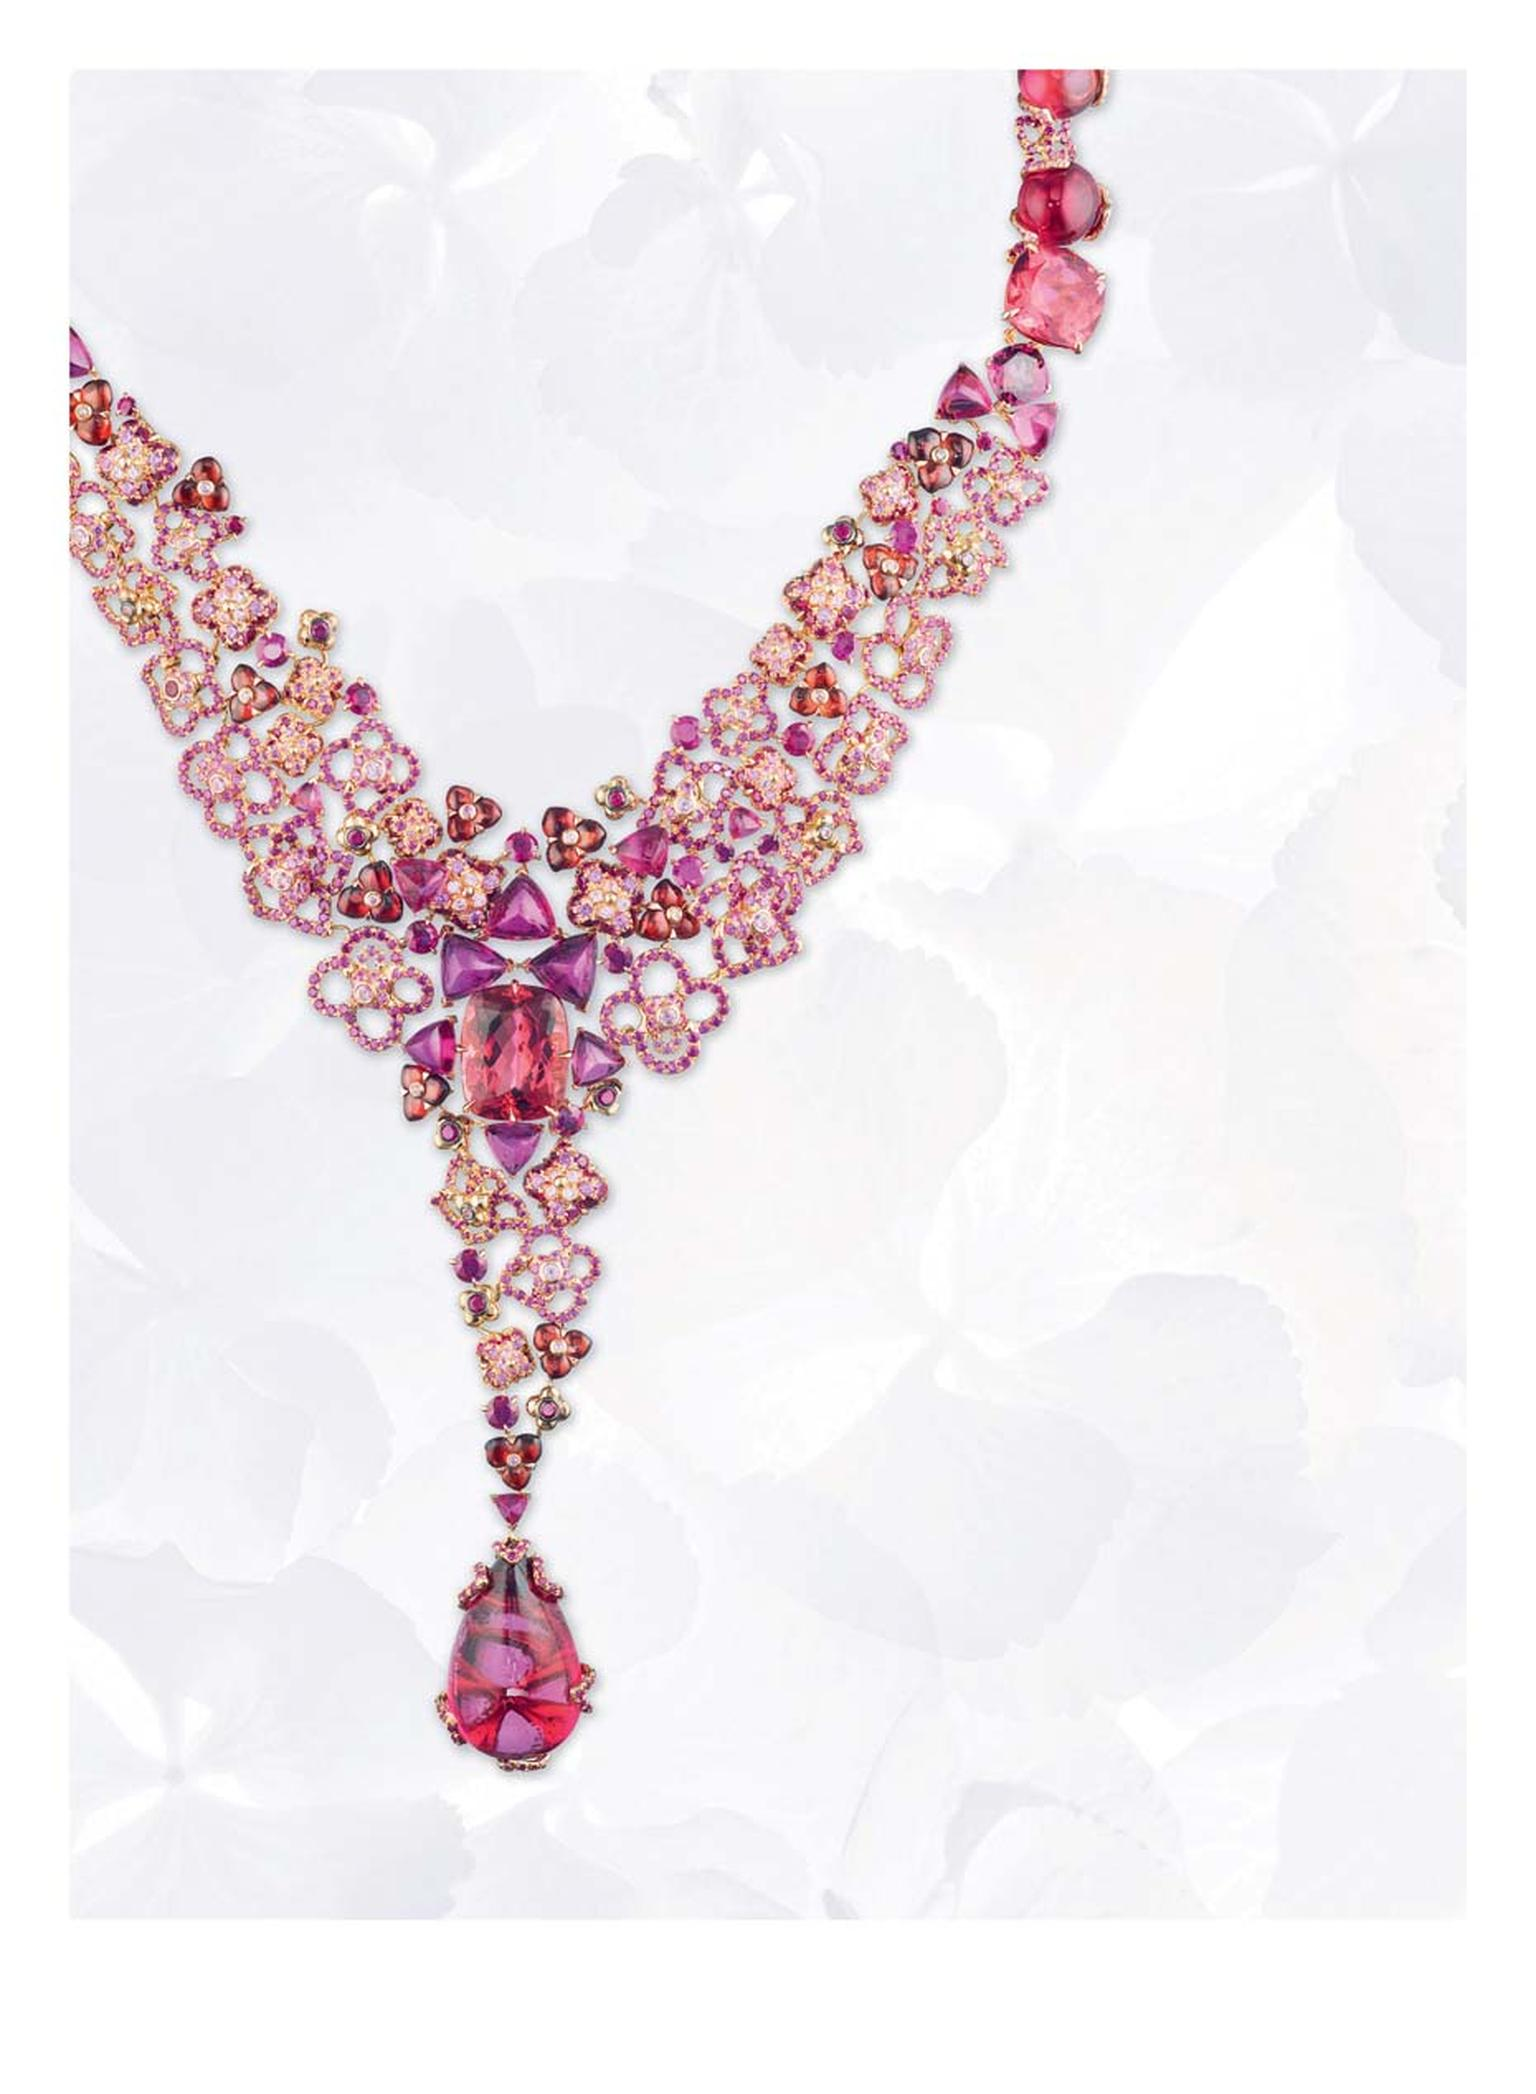 Chaumet Hortensia pink gold necklace with rubies, pink sapphires, rhodolite garnets, red and pink tourmalines and a 25.68ct cabochon-cut pear-shaped red tourmaline drop.